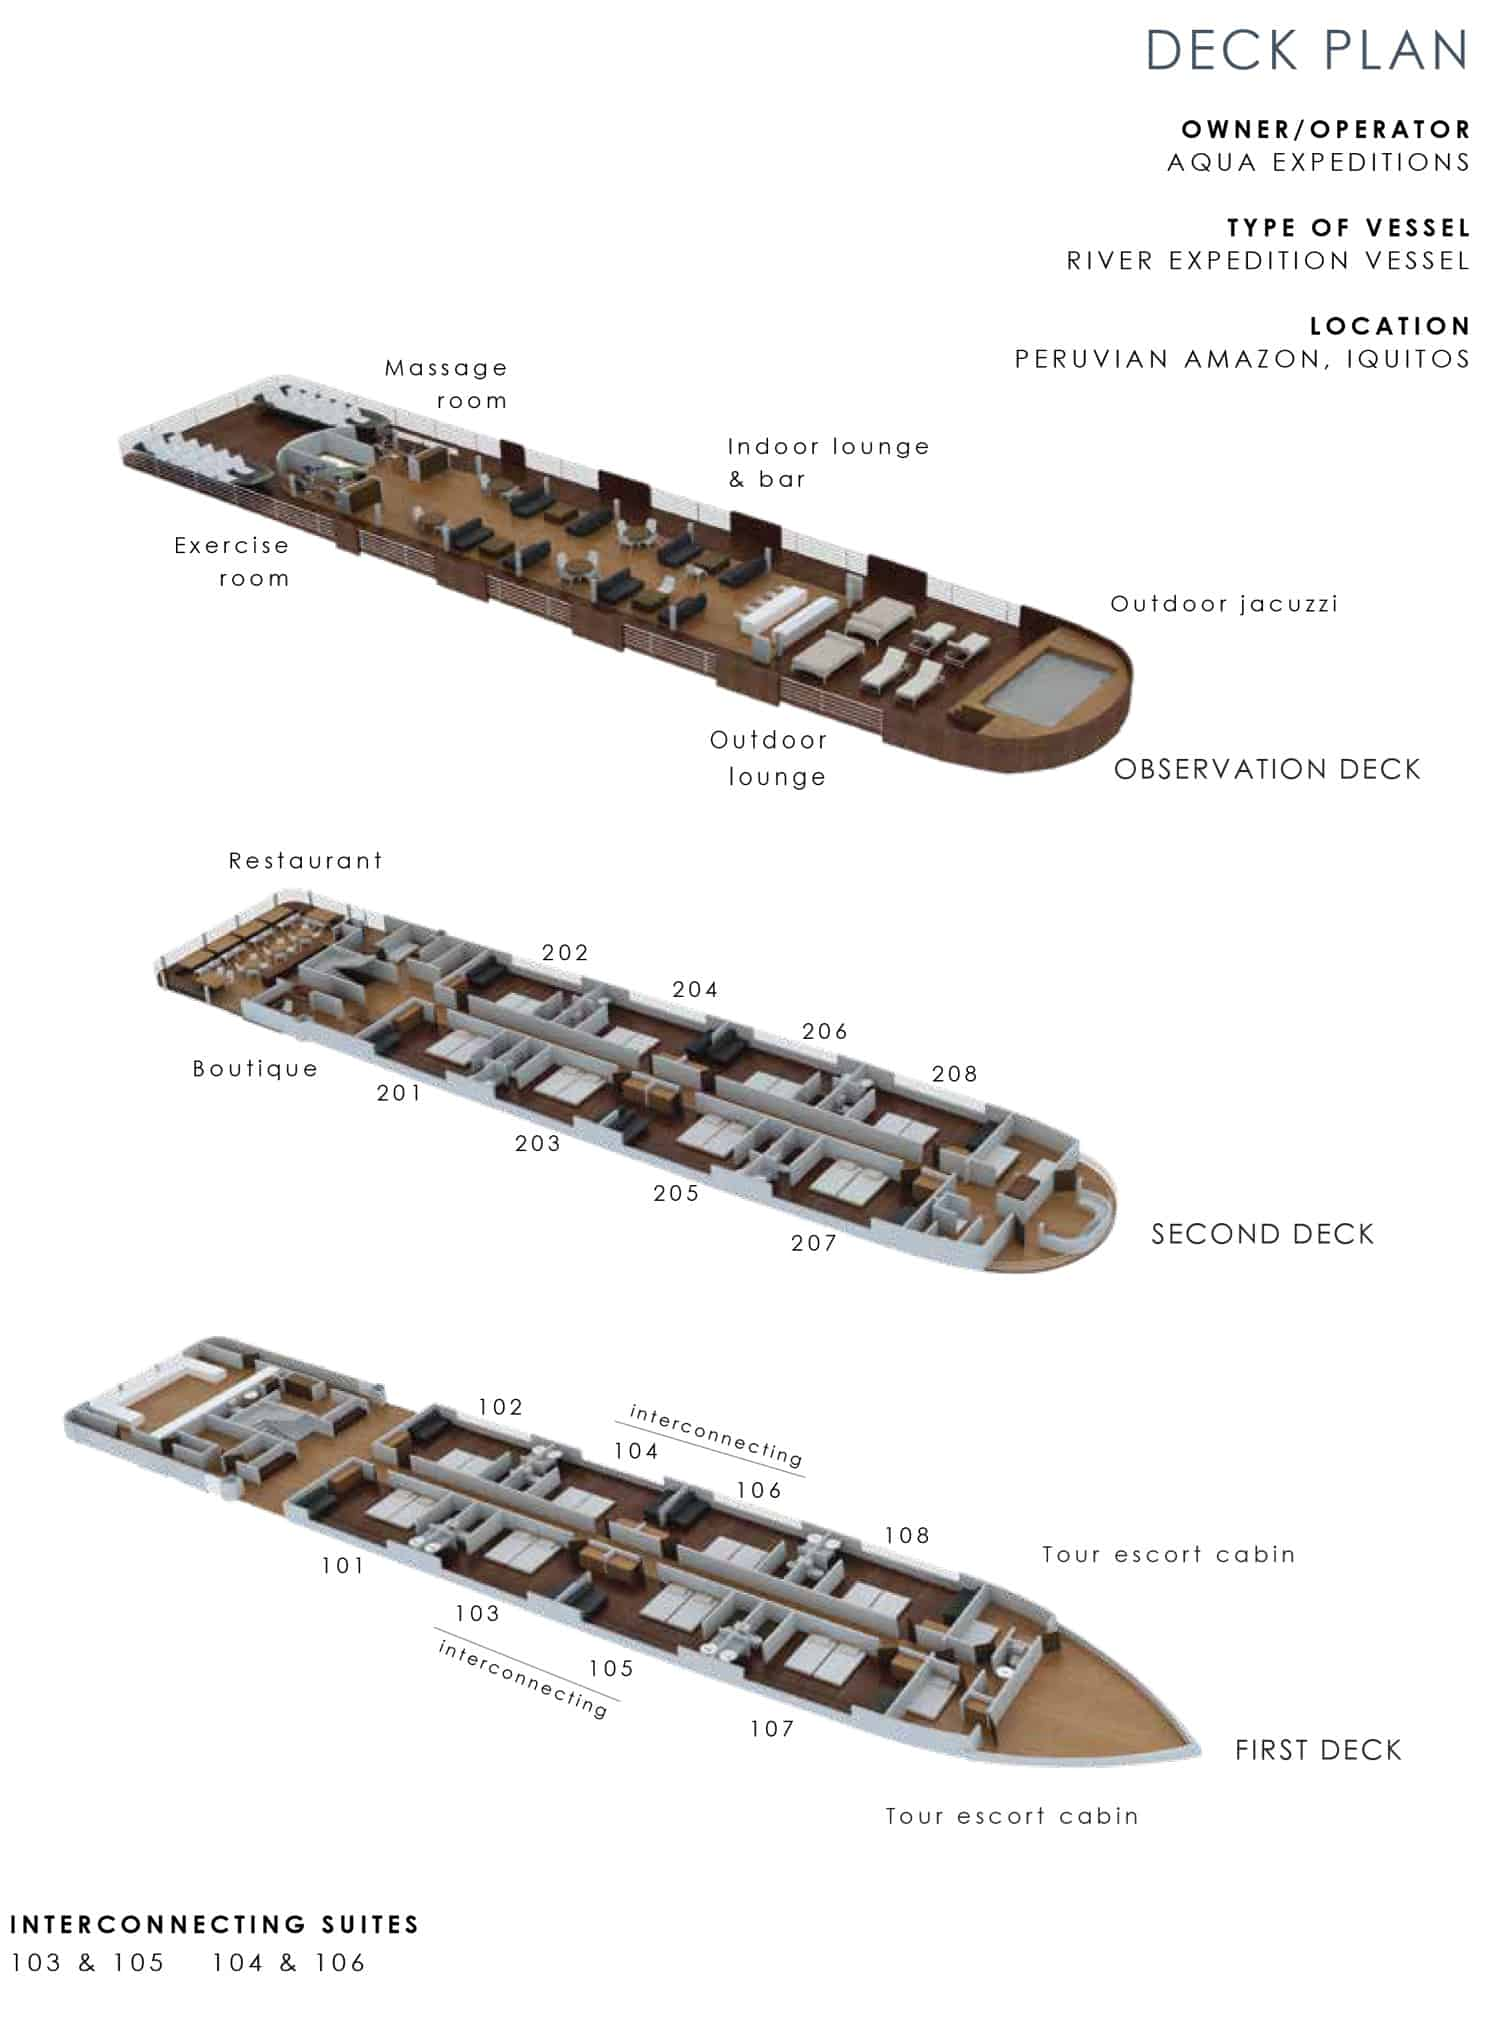 Aria small ship deck plan showing first, second, and observation decks.